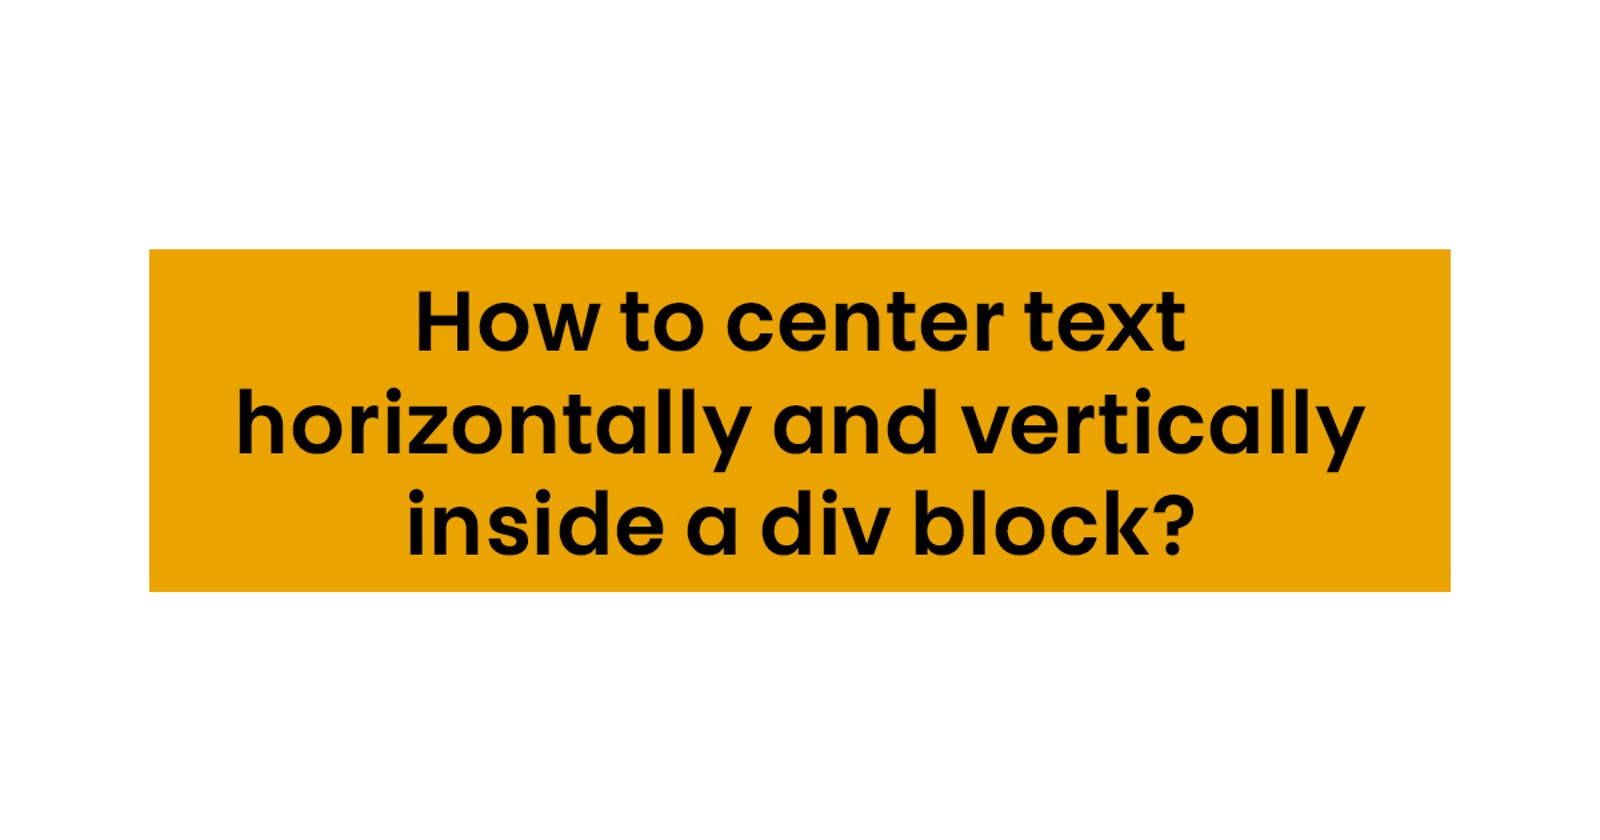 How to center text horizontally and vertically inside a div block? (HTML/CSS)